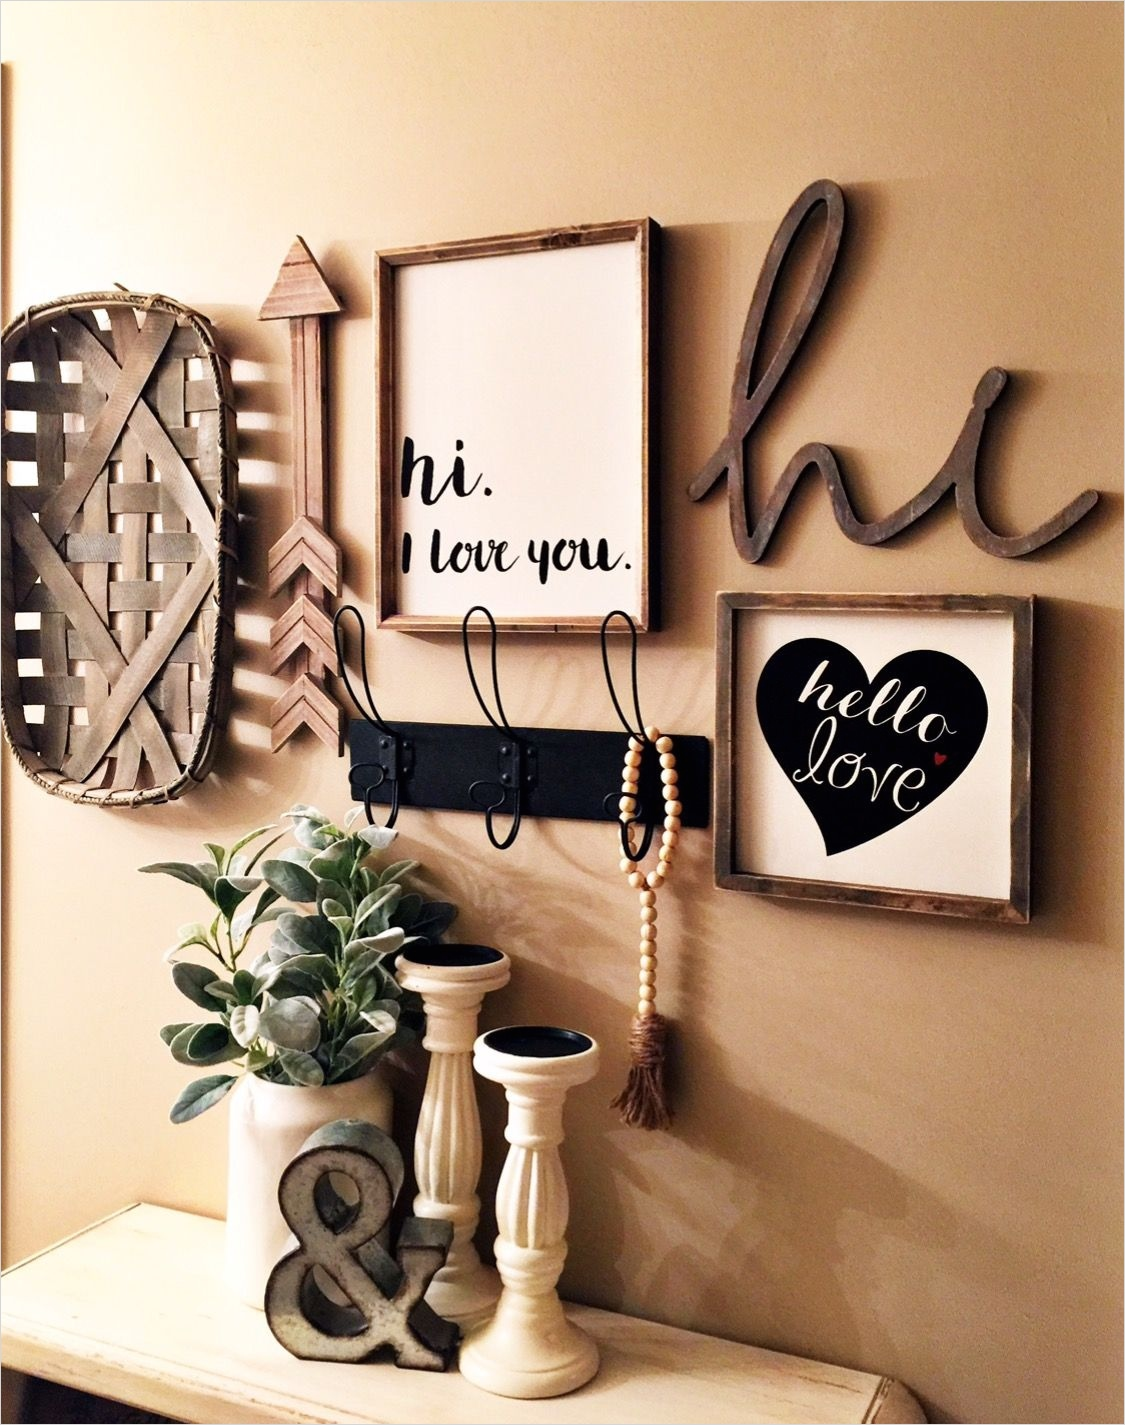 44 Gorgeous Farmhouse Wall Decor 24 Farm Decor Gallery Wall In My Master Bedroom Found All these Pieces at Hobby Lobby 9